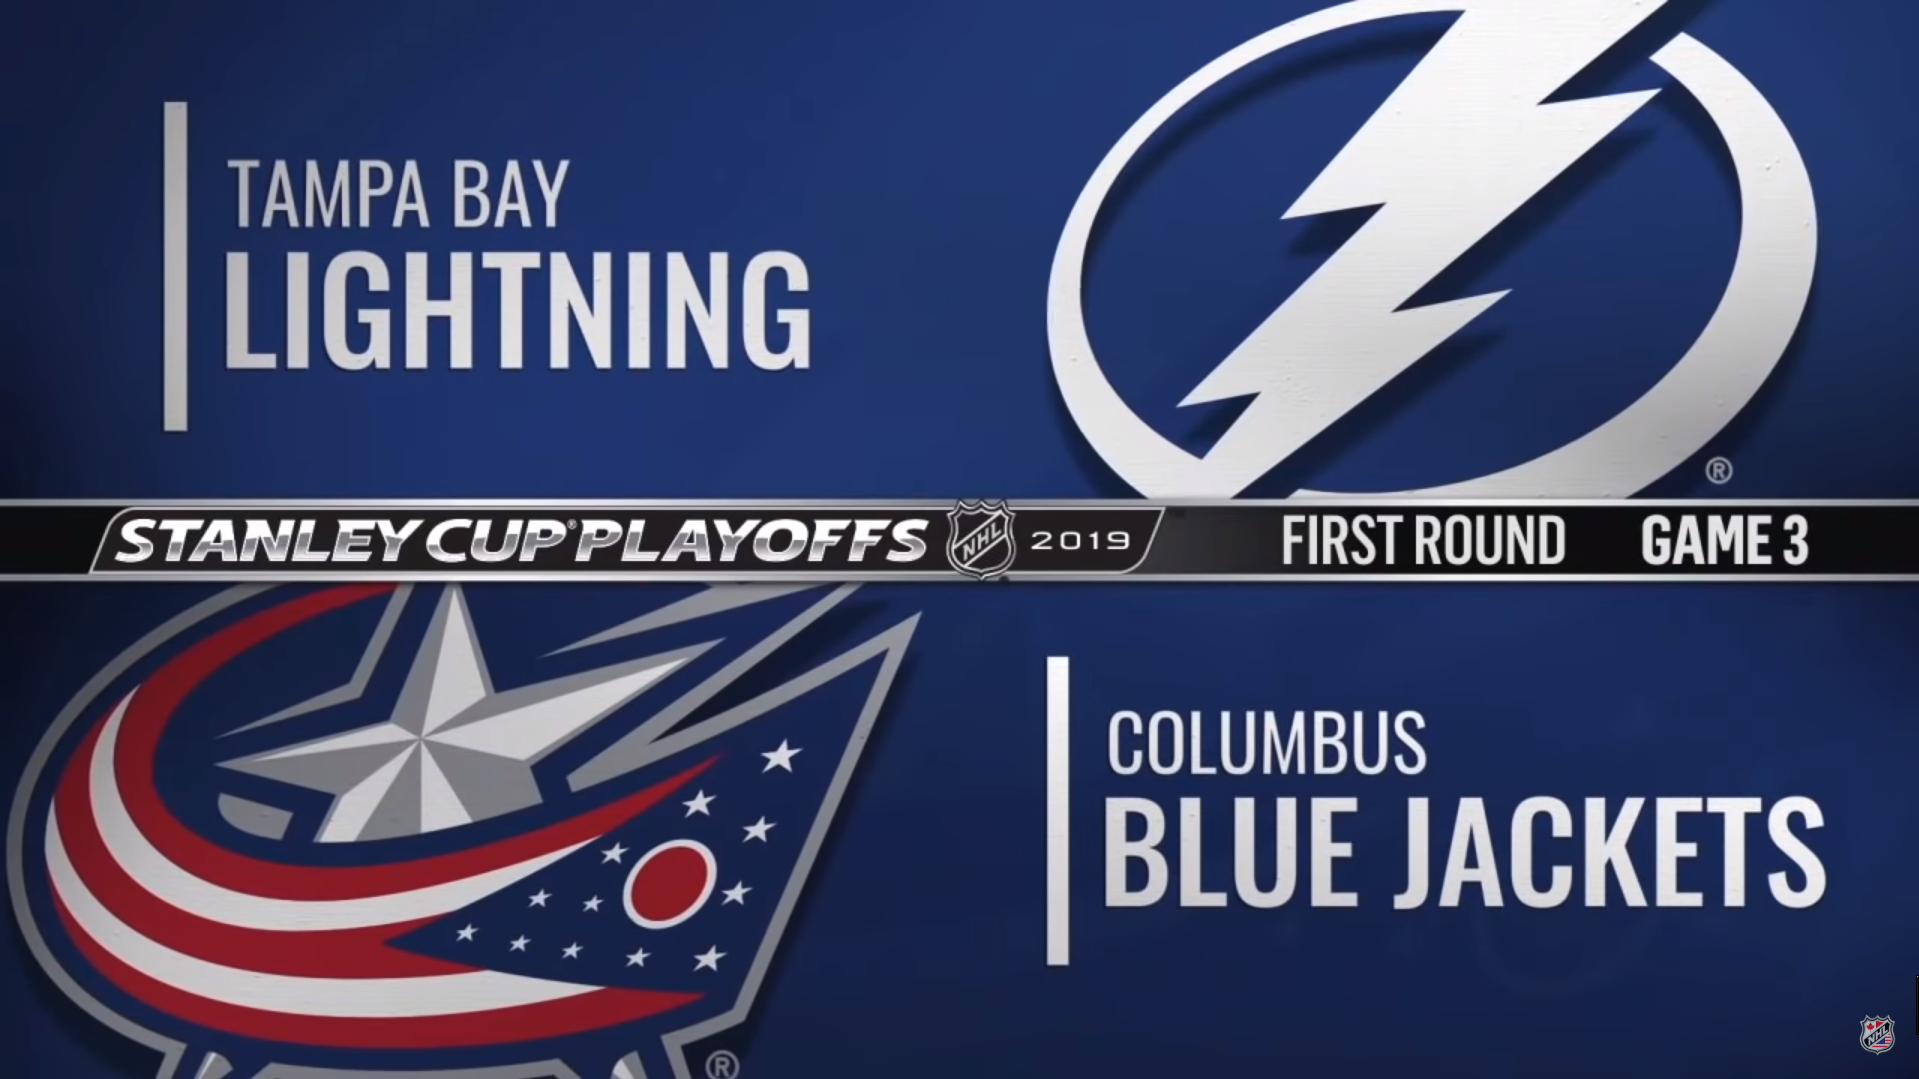 Tampa Bay Lightning - Columbus Blue Jackets